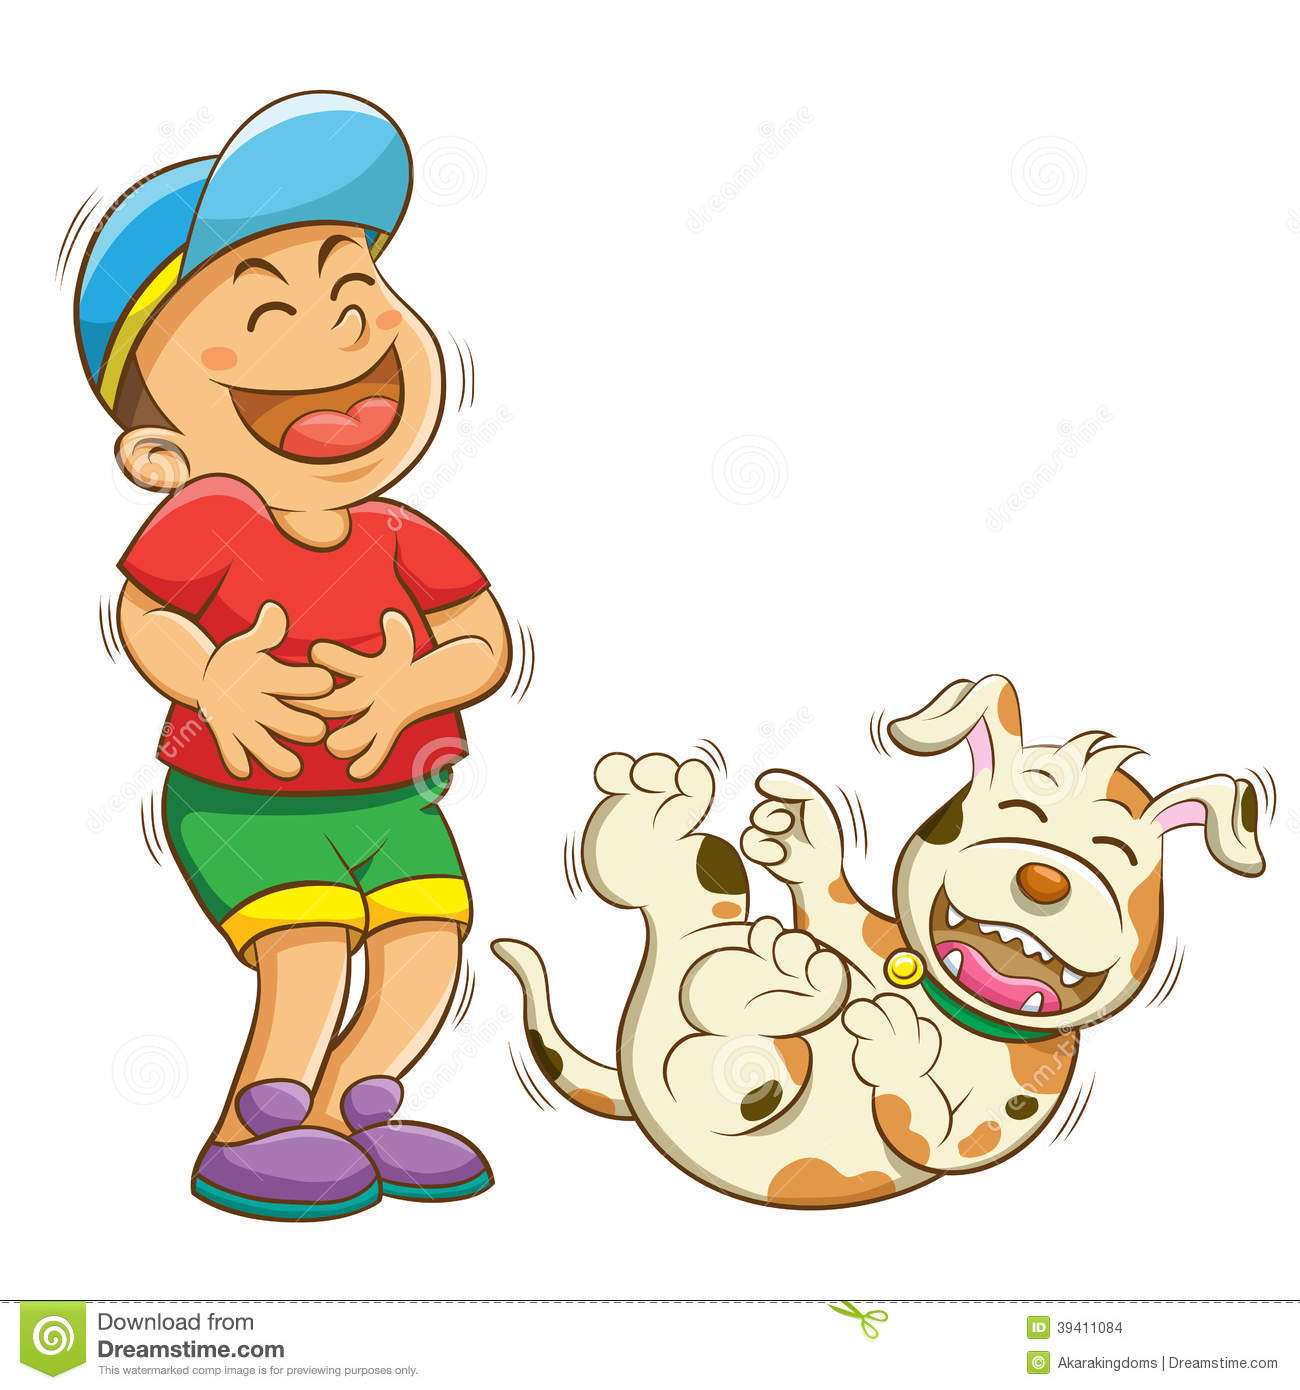 Boy And Dog Laughing Stock Vector - Image: 39411084 - photo#50